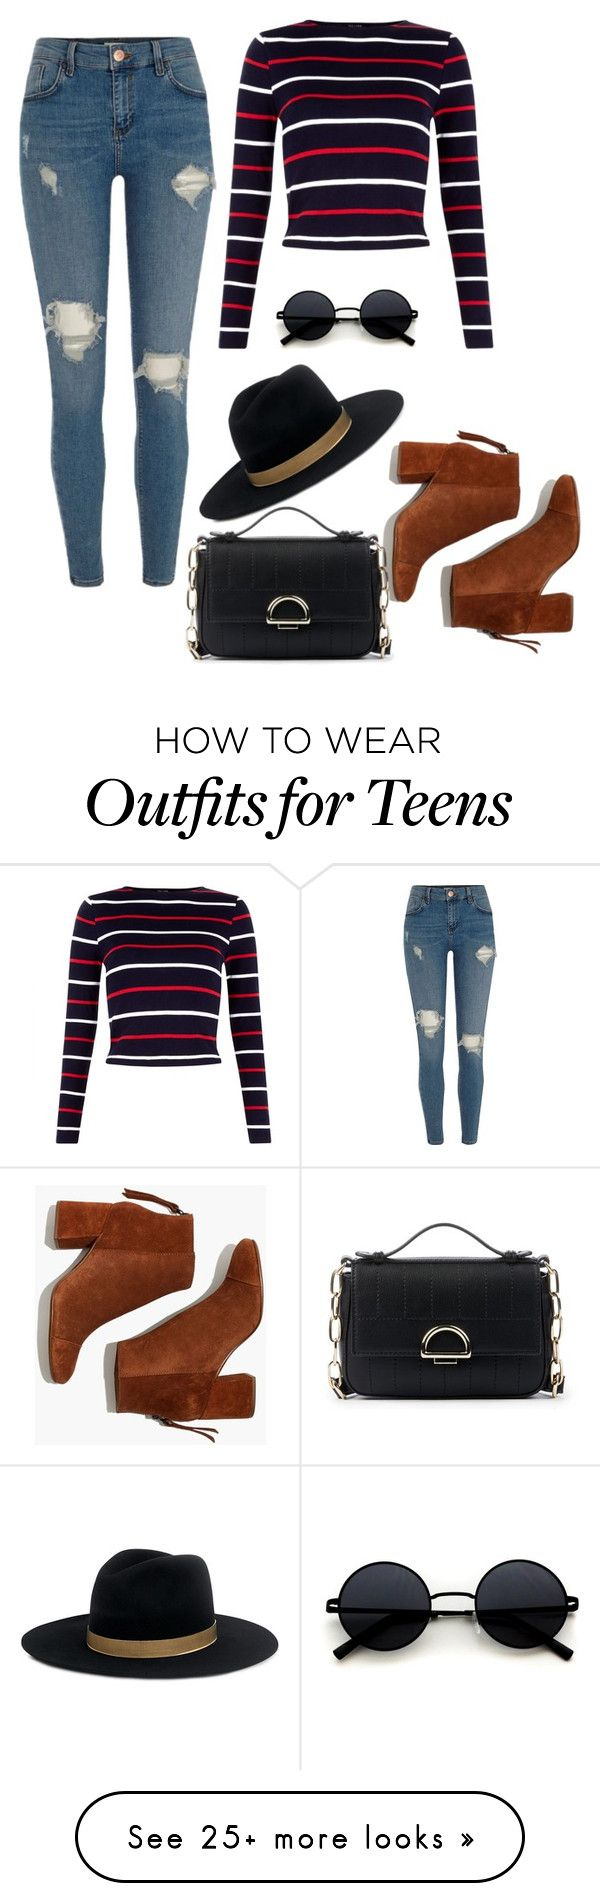 """""""Sin título #469"""" by andreacpachon on Polyvore featuring Madewell, River Island, Janessa Leone and Sole Society"""